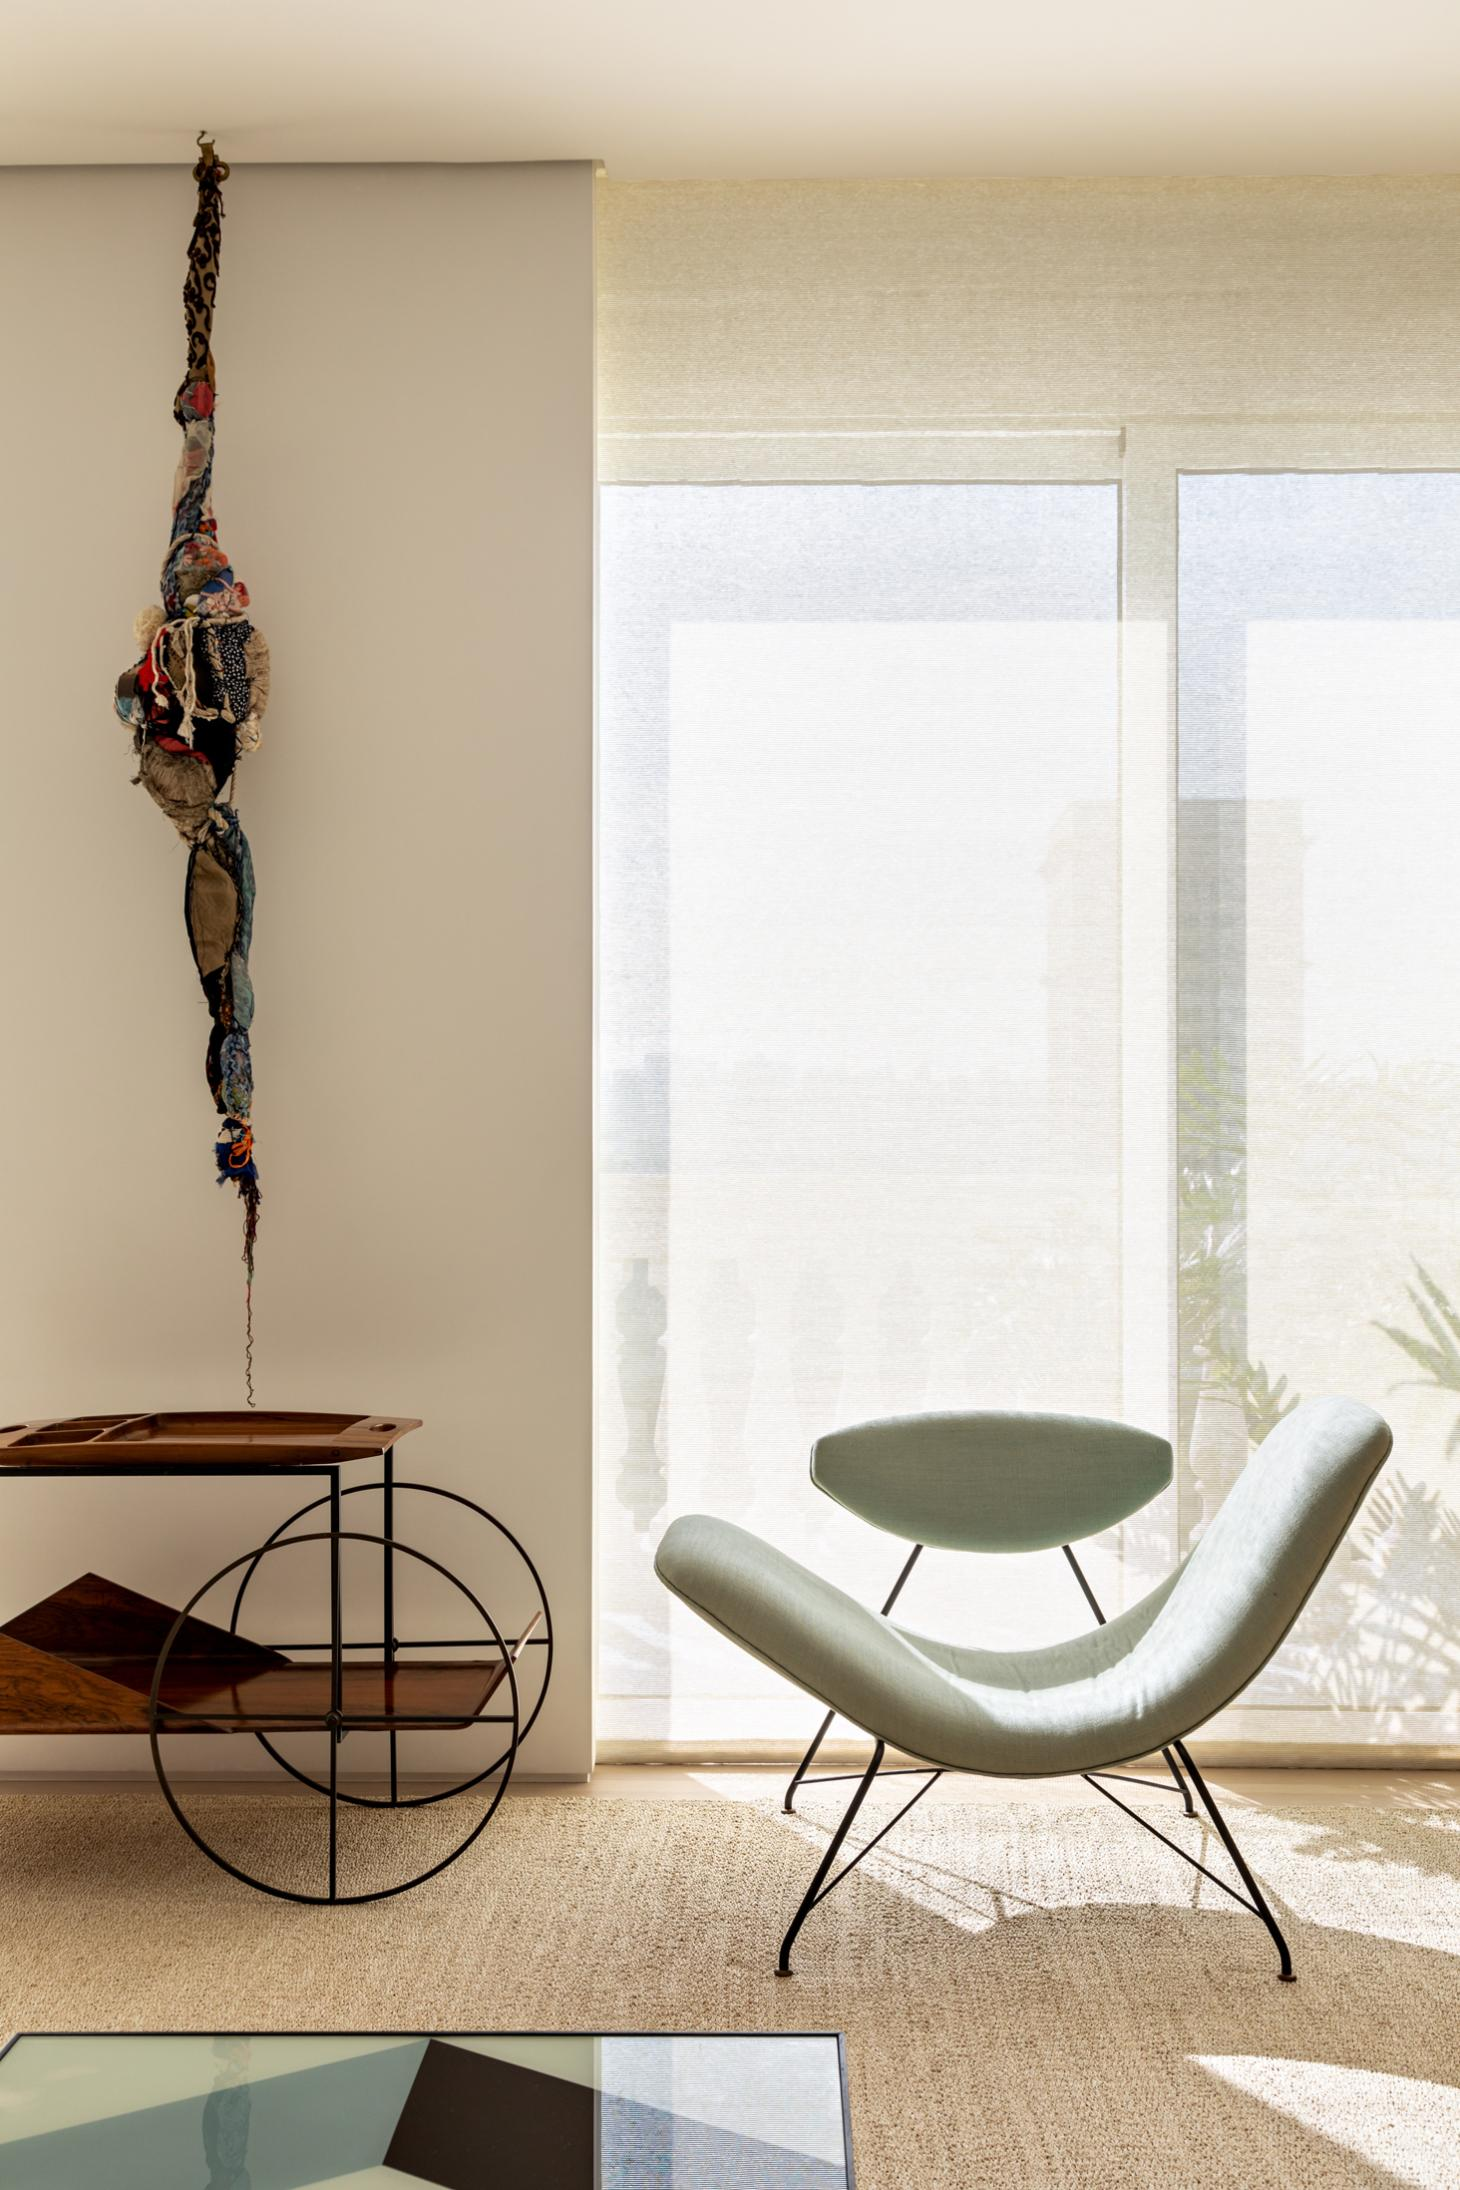 interior detail with art at apartment all by Arthur casas in Brazil